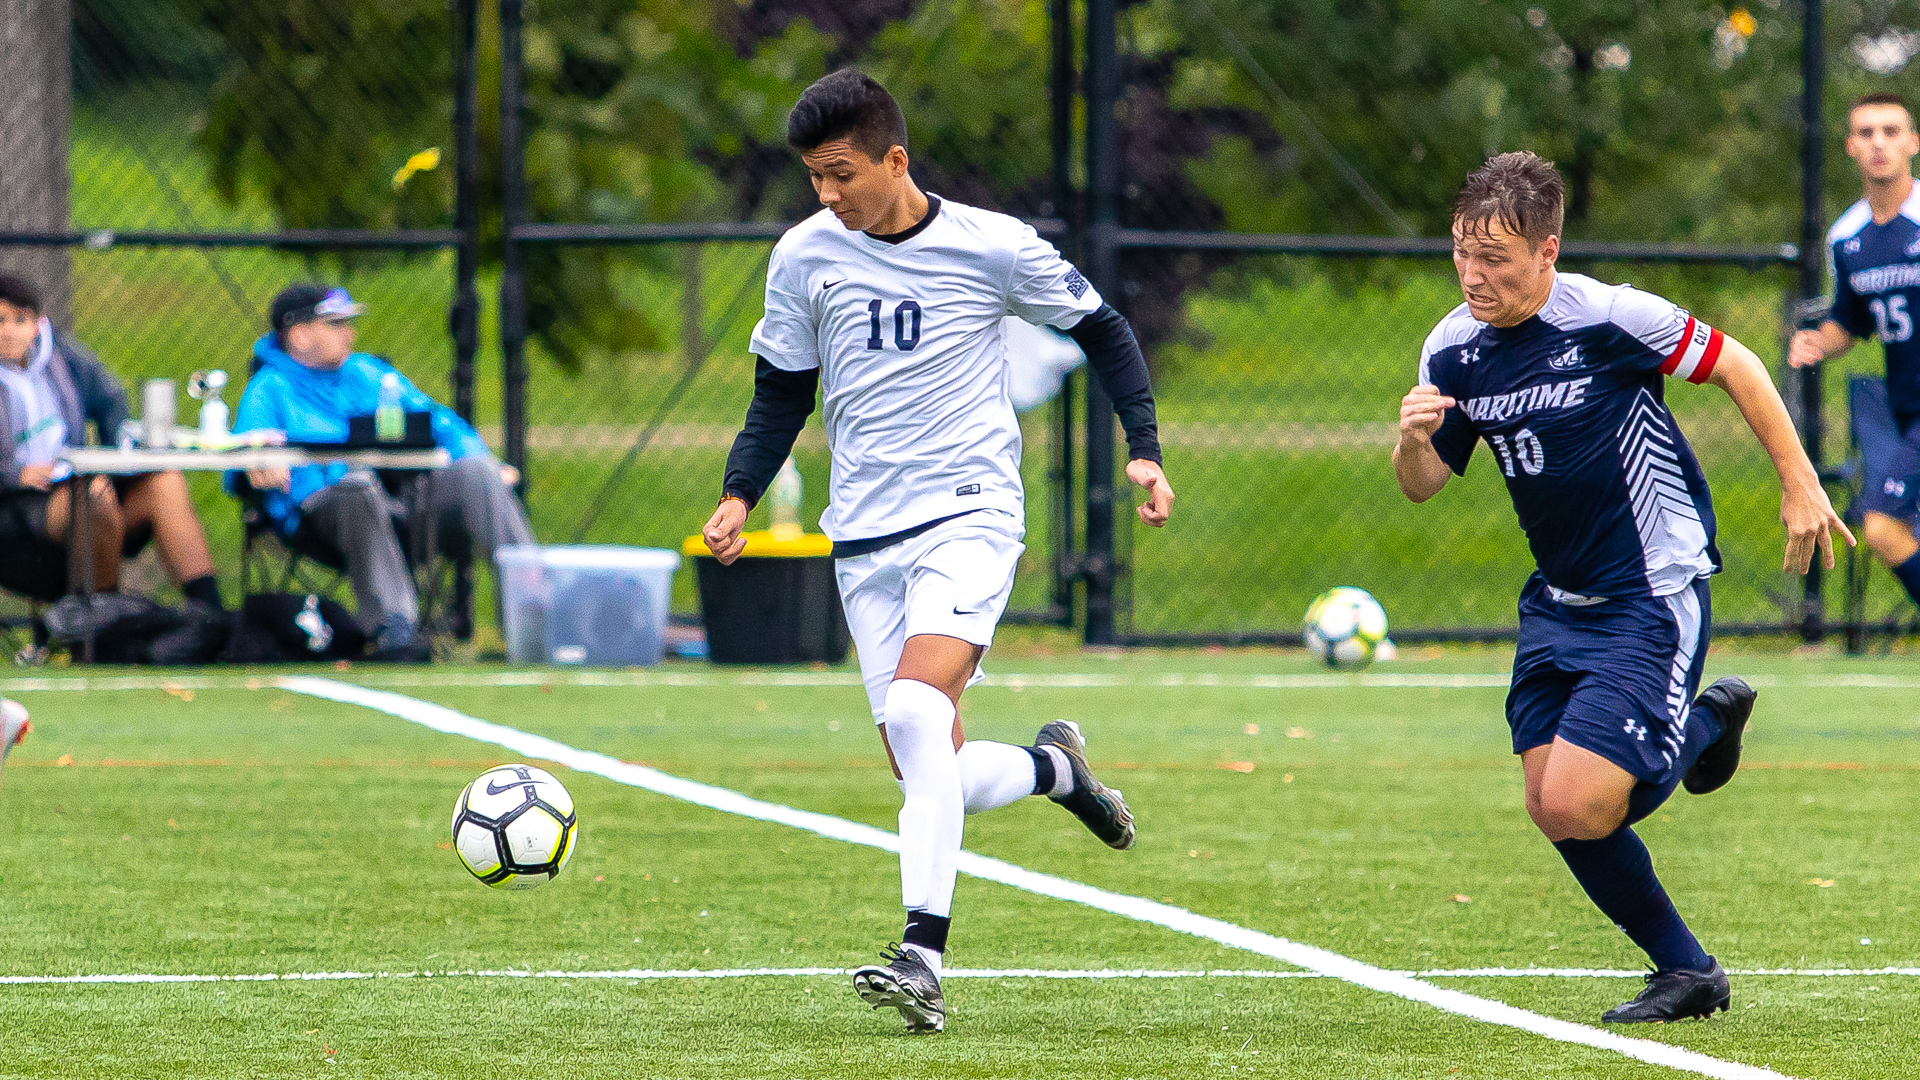 Garcia Sets Single-Game Goals and Points Records as Men's Soccer Runs Past Pratt